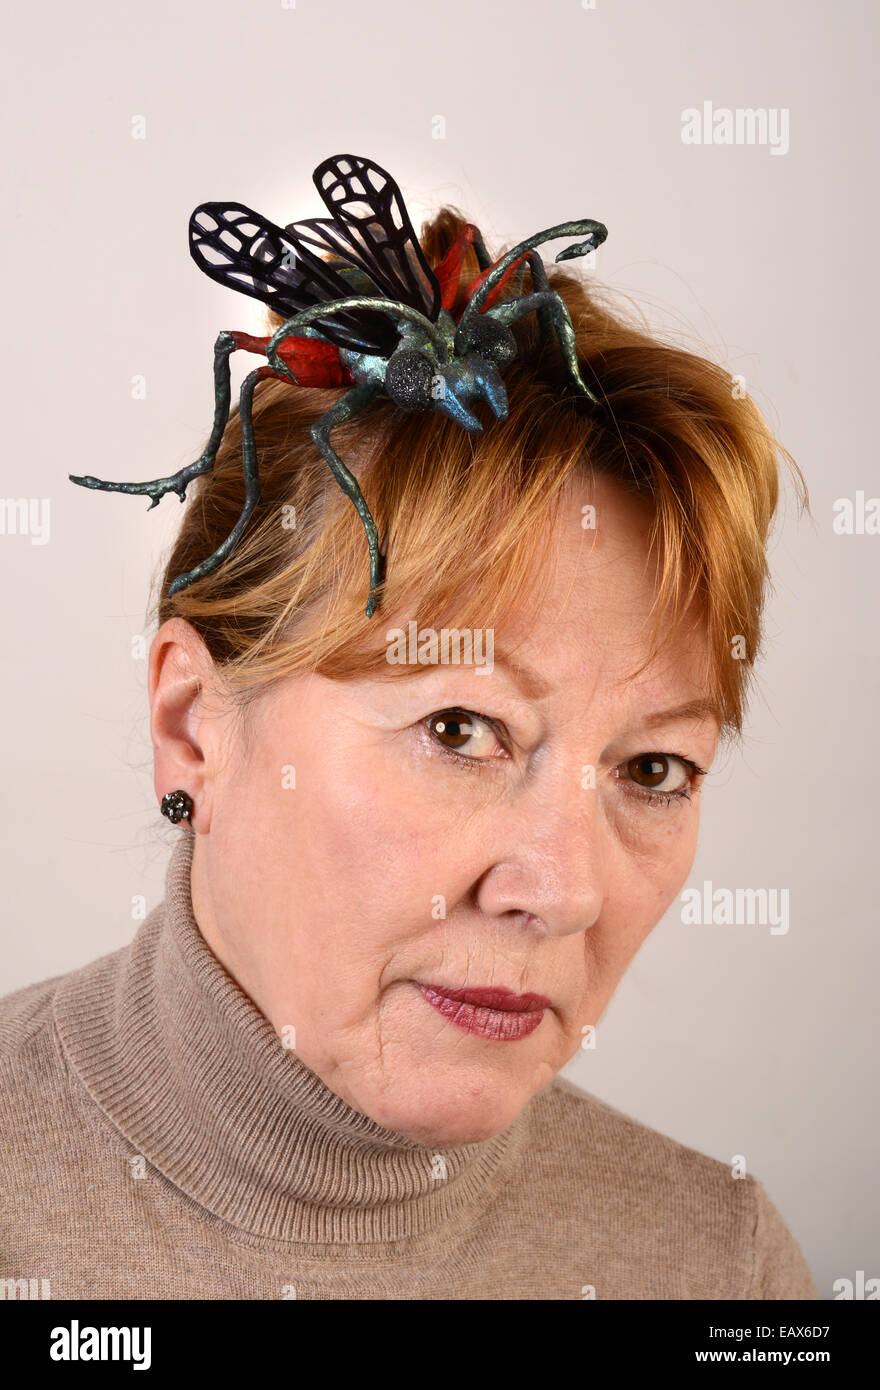 Woman wearing a creative fascinator modelled on the 'Emerald Cockraoch Wasp' or 'Jewel Wasp' made - Stock Image